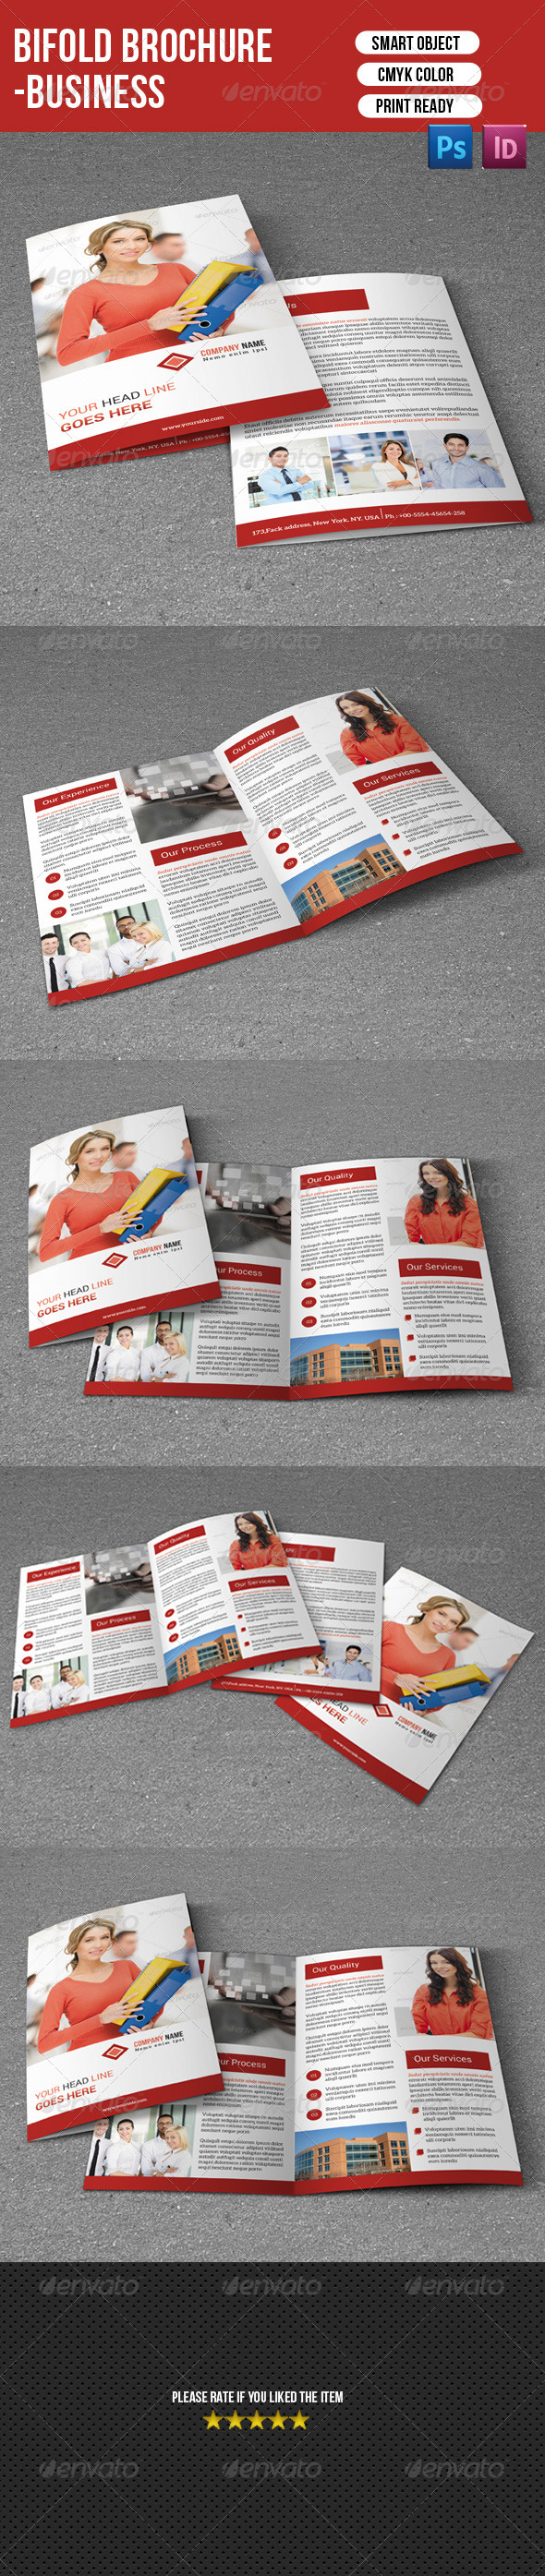 GraphicRiver Bifold Brochure-Business 7460496